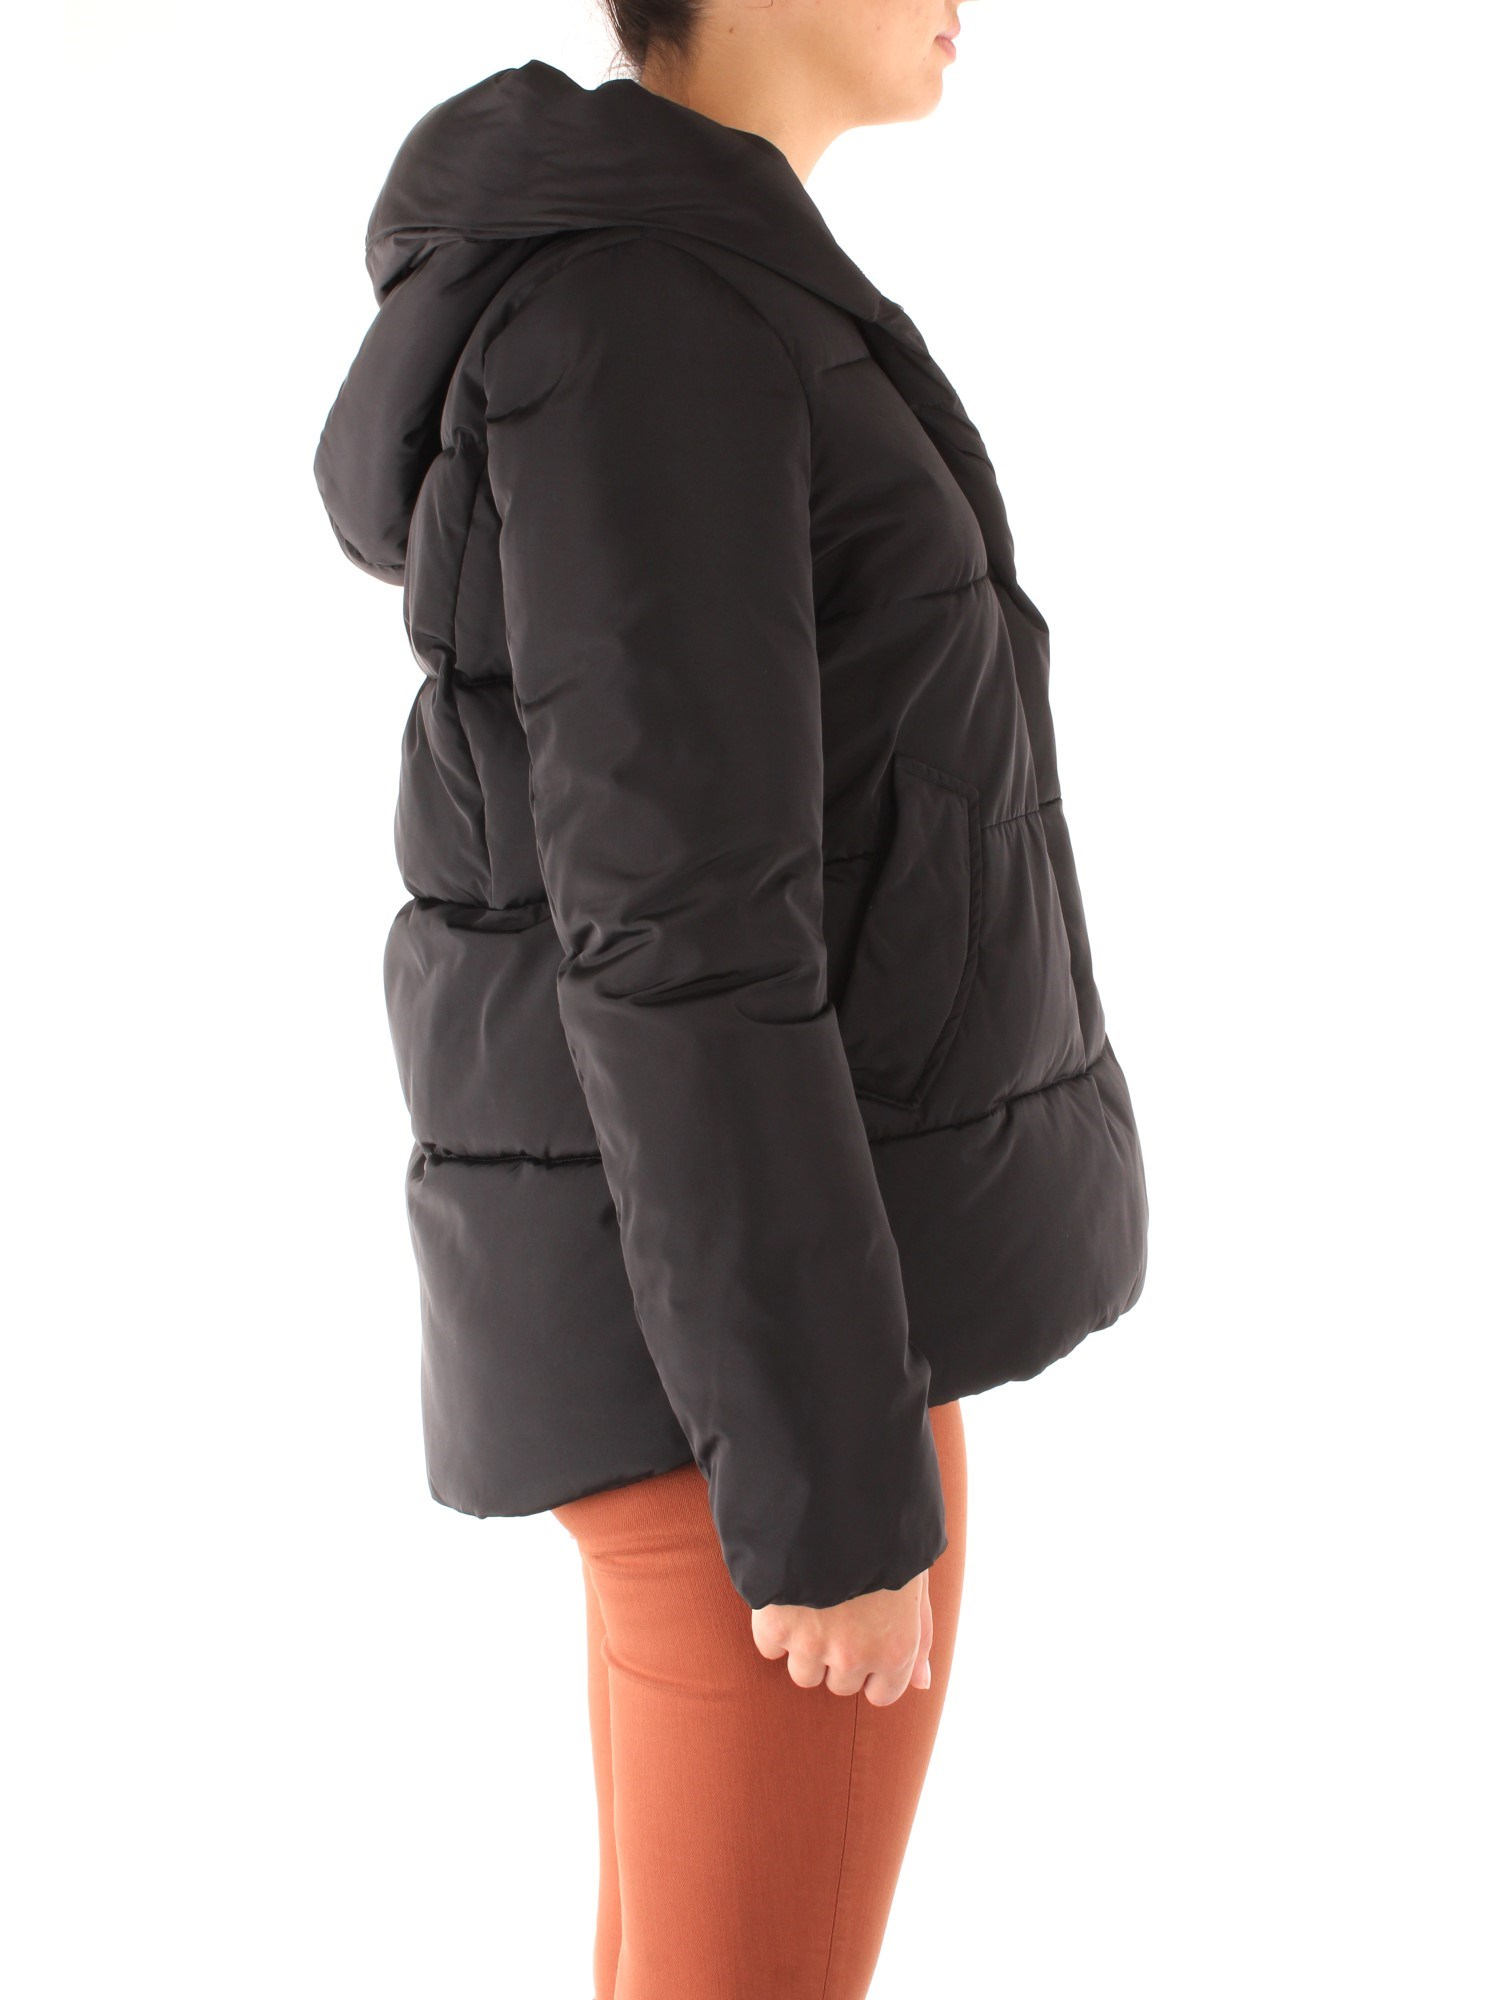 Penn-rich By Woolrich Clothing Women Outerwear BLACK WYCPS0585